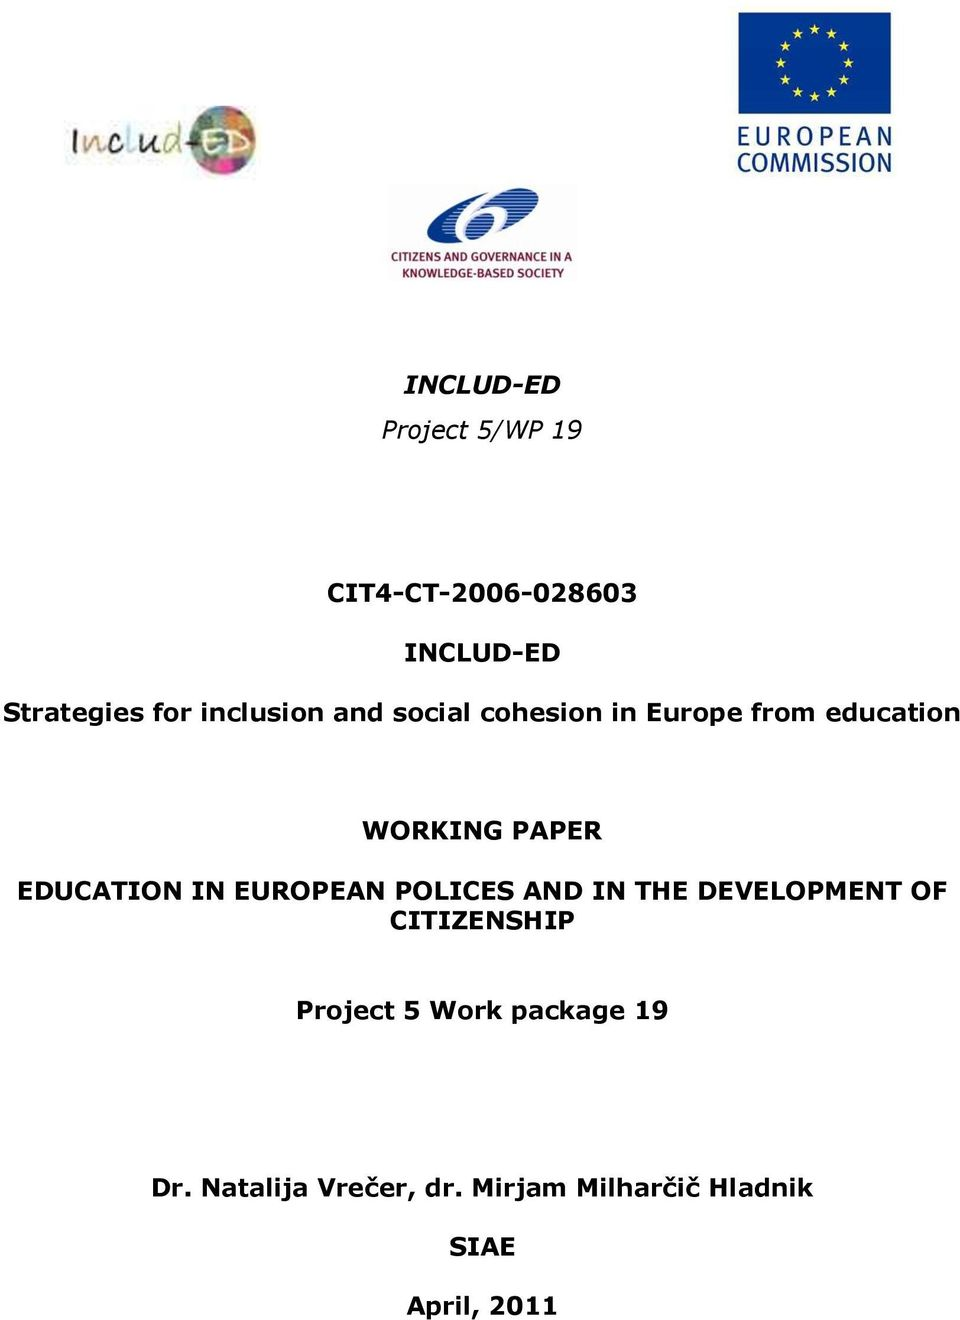 EDUCATION IN EUROPEAN POLICES AND IN THE DEVELOPMENT OF CITIZENSHIP